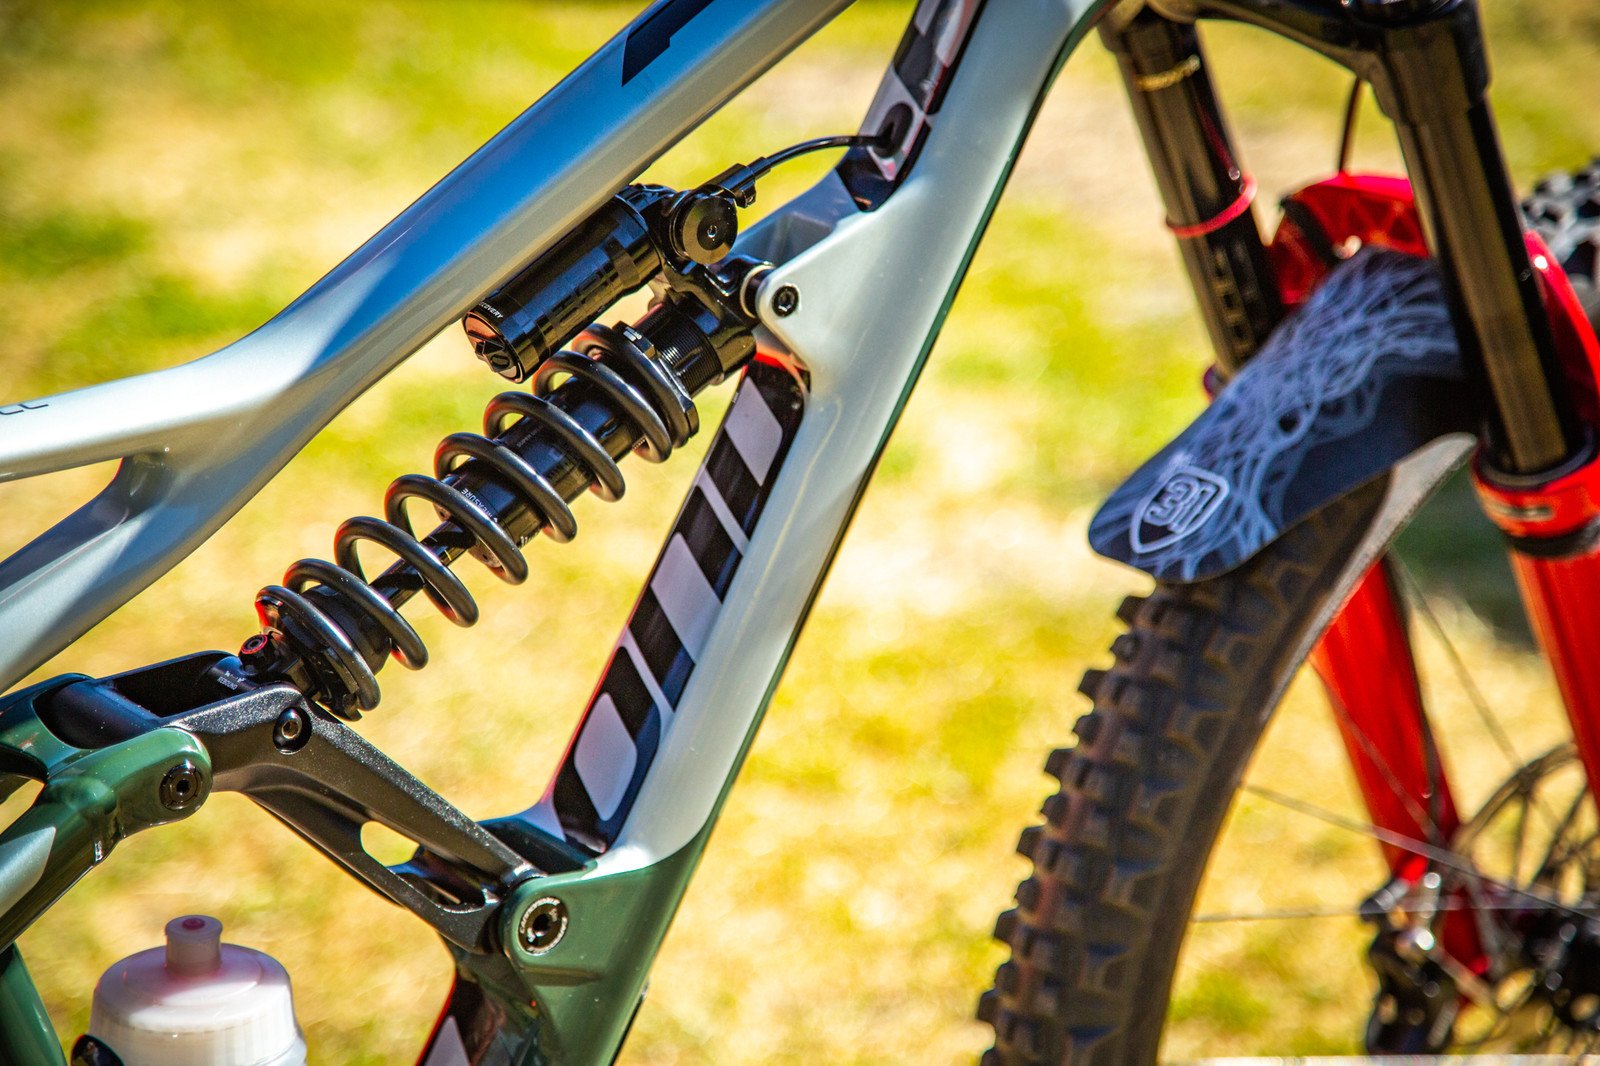 Rockshox SuperDeluxe coil with remote lockout - PIT BITS - Enduro World Series, La Thuile - Mountain Biking Pictures - Vital MTB